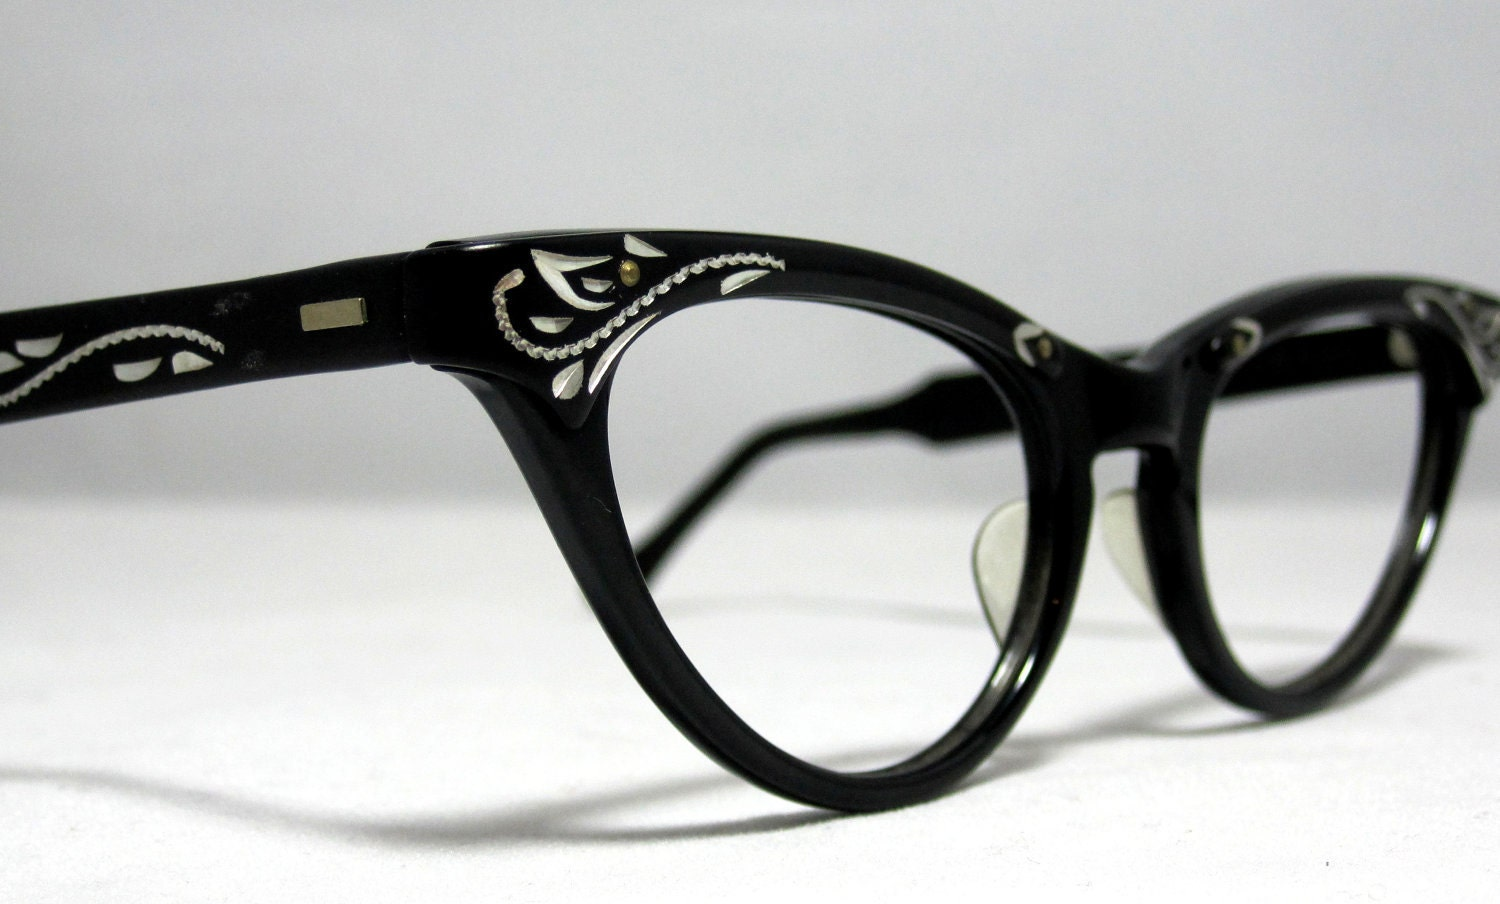 Cat Eyeglass Frames : Vintage Cat Eye Glasses Frames. Black and Silver with Etched